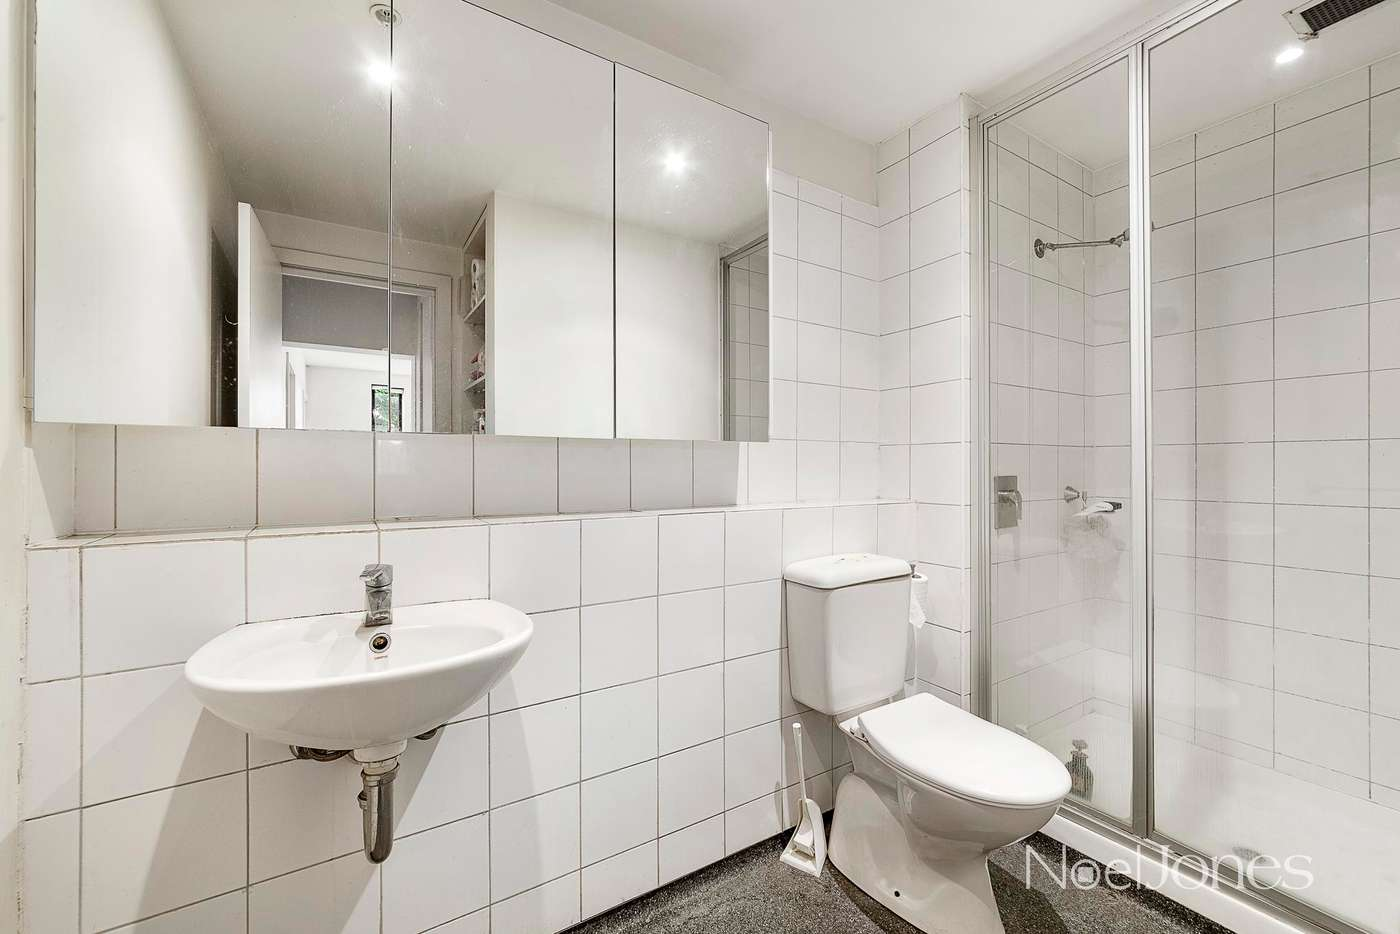 Sixth view of Homely apartment listing, 101/60 Waverley Road, Malvern East VIC 3145